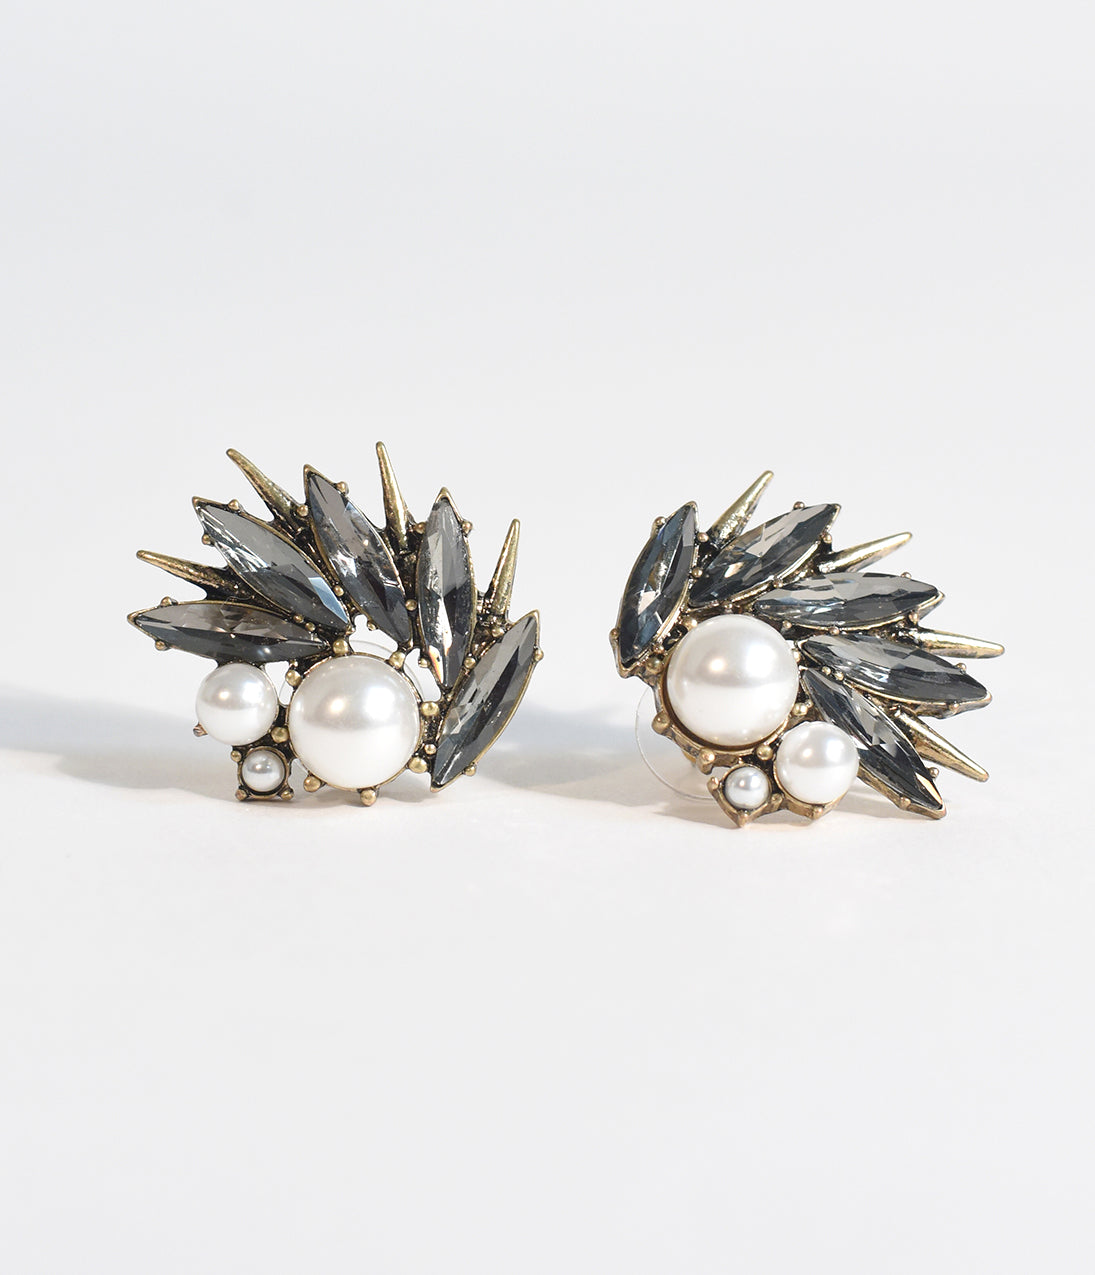 Vintage Style Jewelry, Retro Jewelry Deco Style Pearl  Dark Gem Thistle Stud Earrings $22.00 AT vintagedancer.com